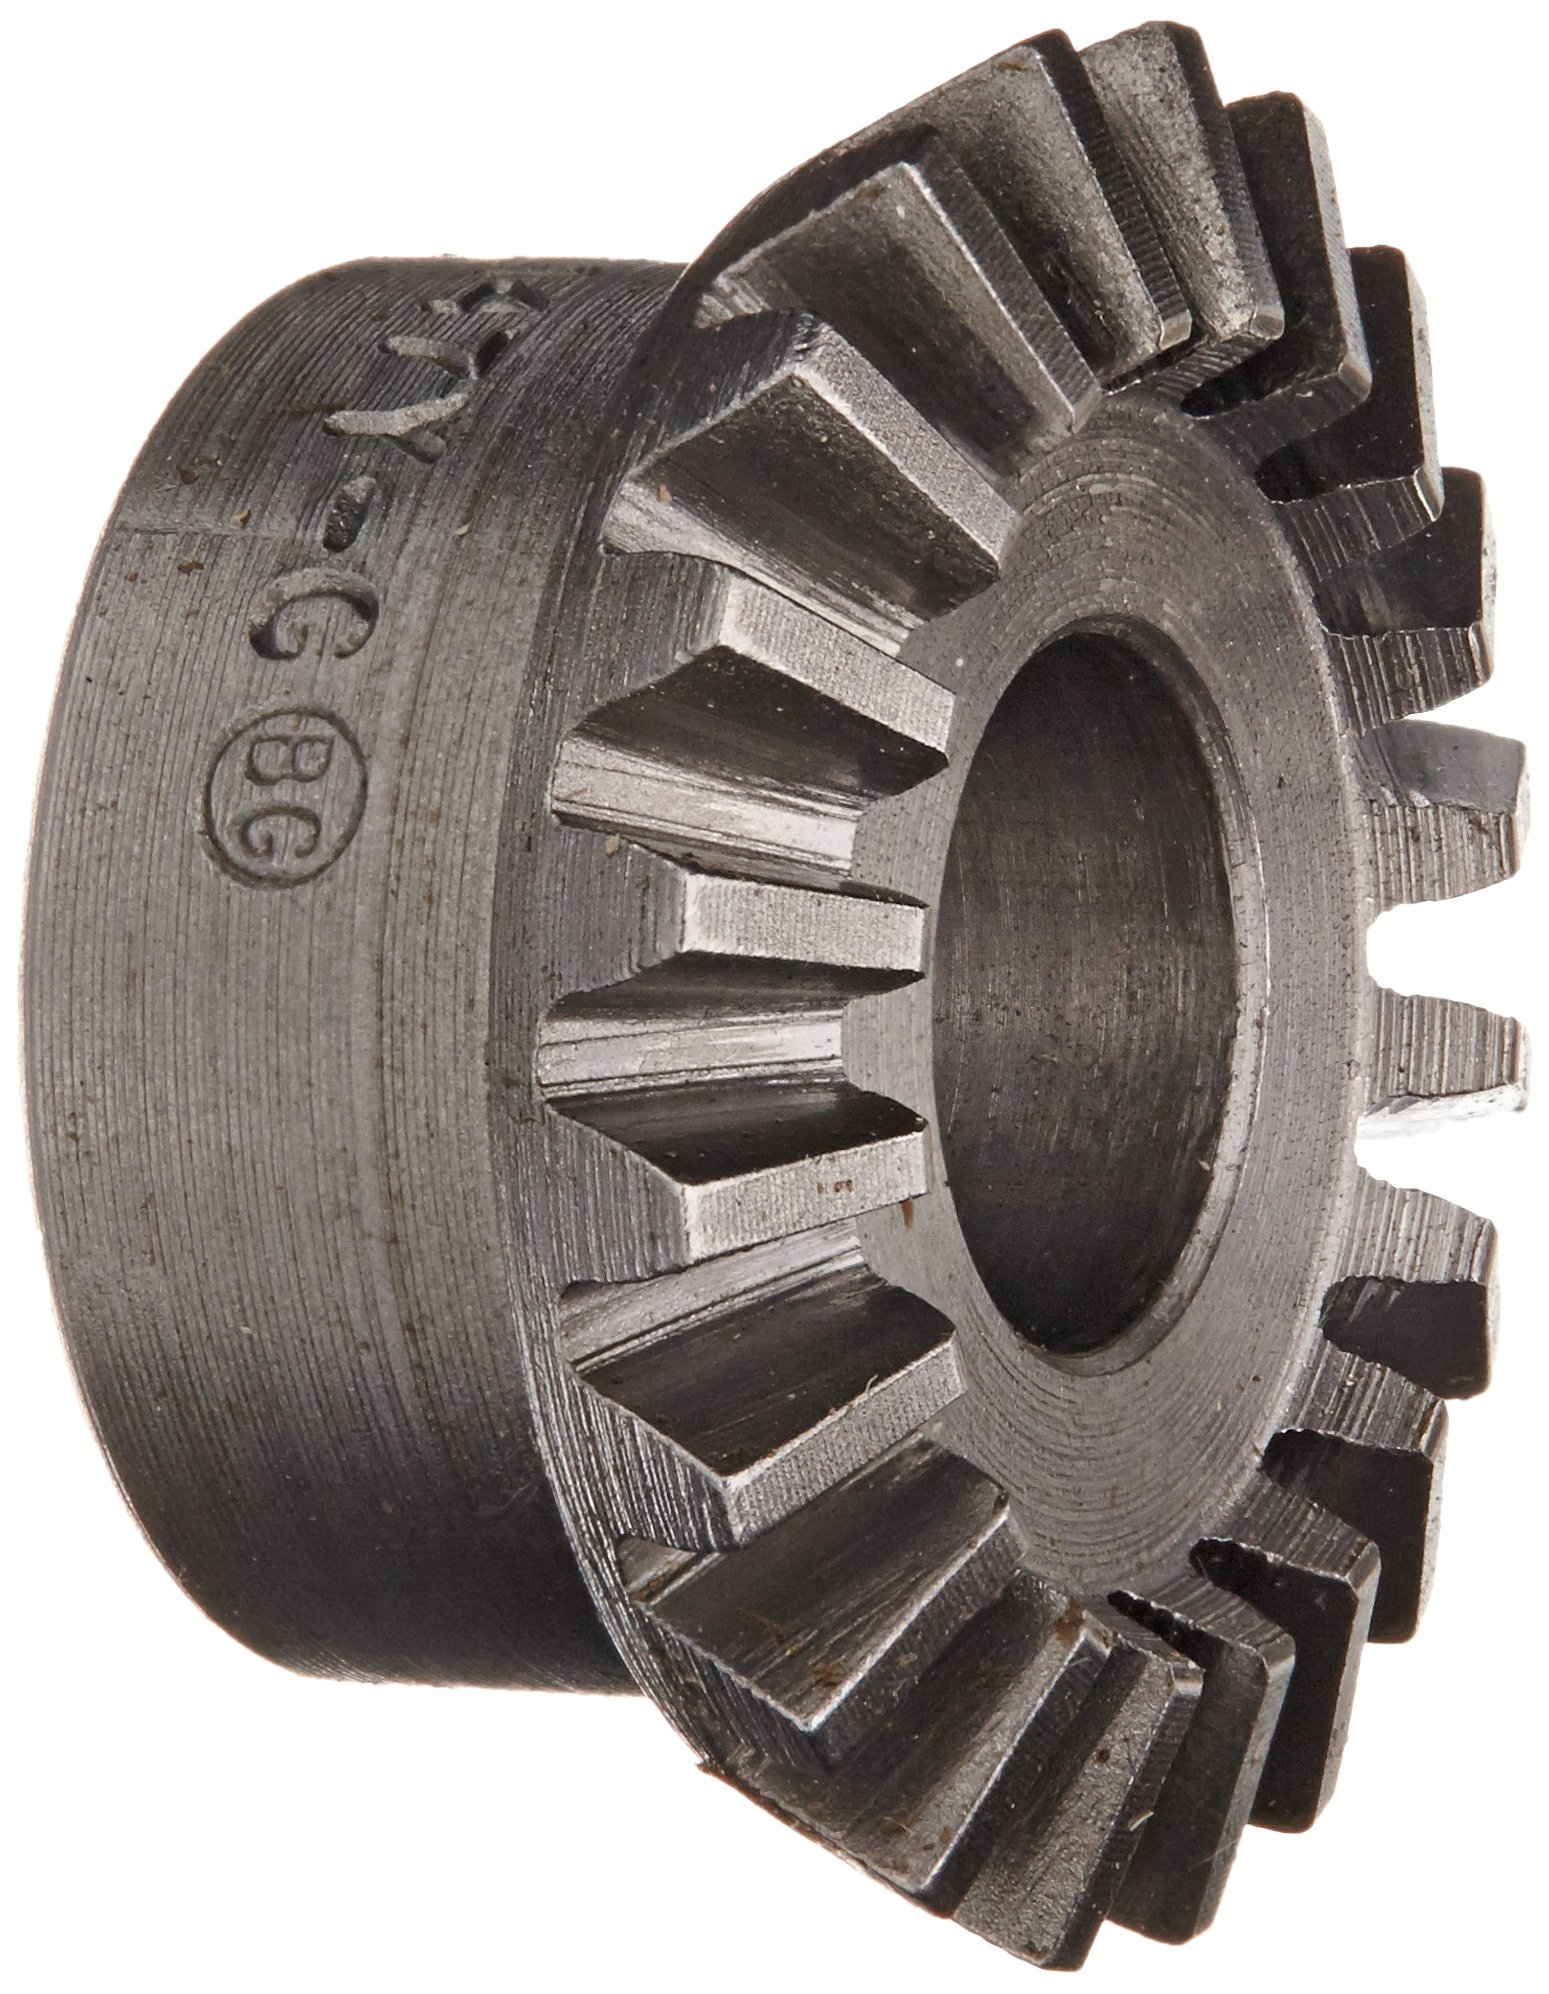 Boston Gear L147Y-G Bevel Gear, 2:1 Ratio, 0.375'' Bore, 20 Pitch, 20 Teeth, 20 Degree Pressure Angle, Straight Bevel, Steel